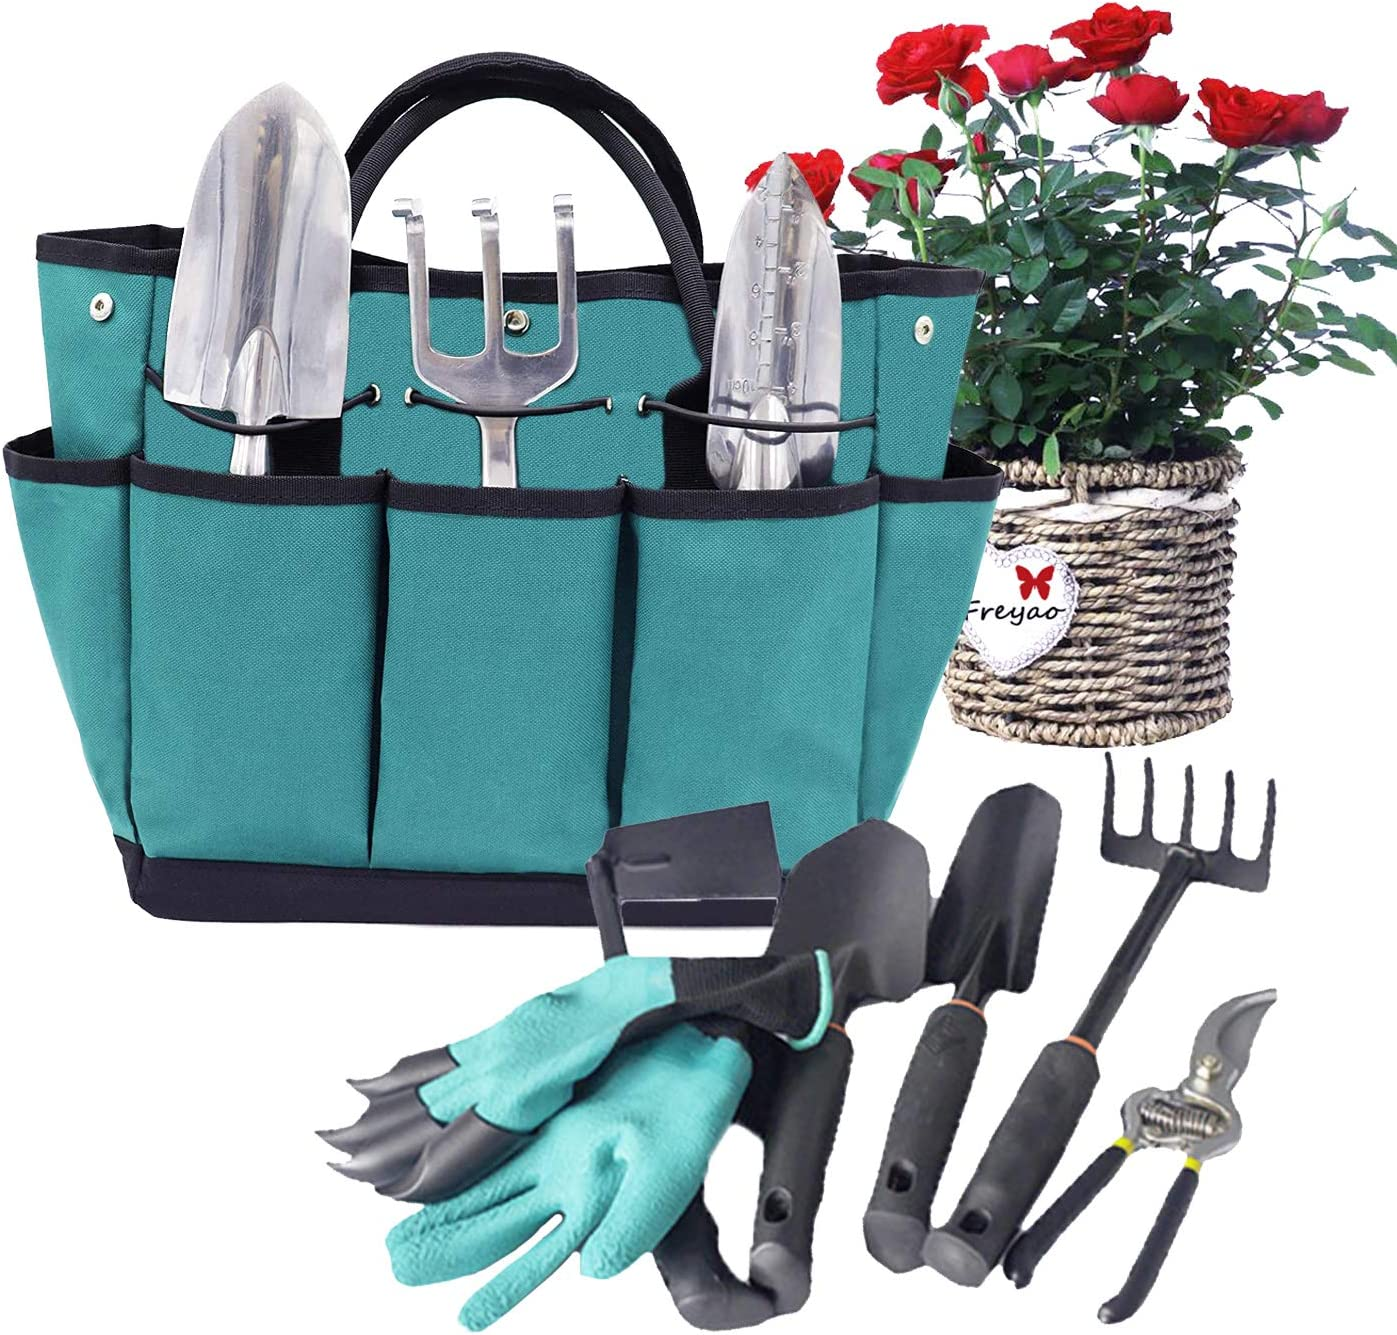 Garden Tote Gardening Organizer with 8 Pockets Garden Bags Elastic Bands to Hold the Tools Stand Up Bottom Great Gift Gardening Tools Bags for Women/Men Garden Works(Tools Not Included - Dark Green)